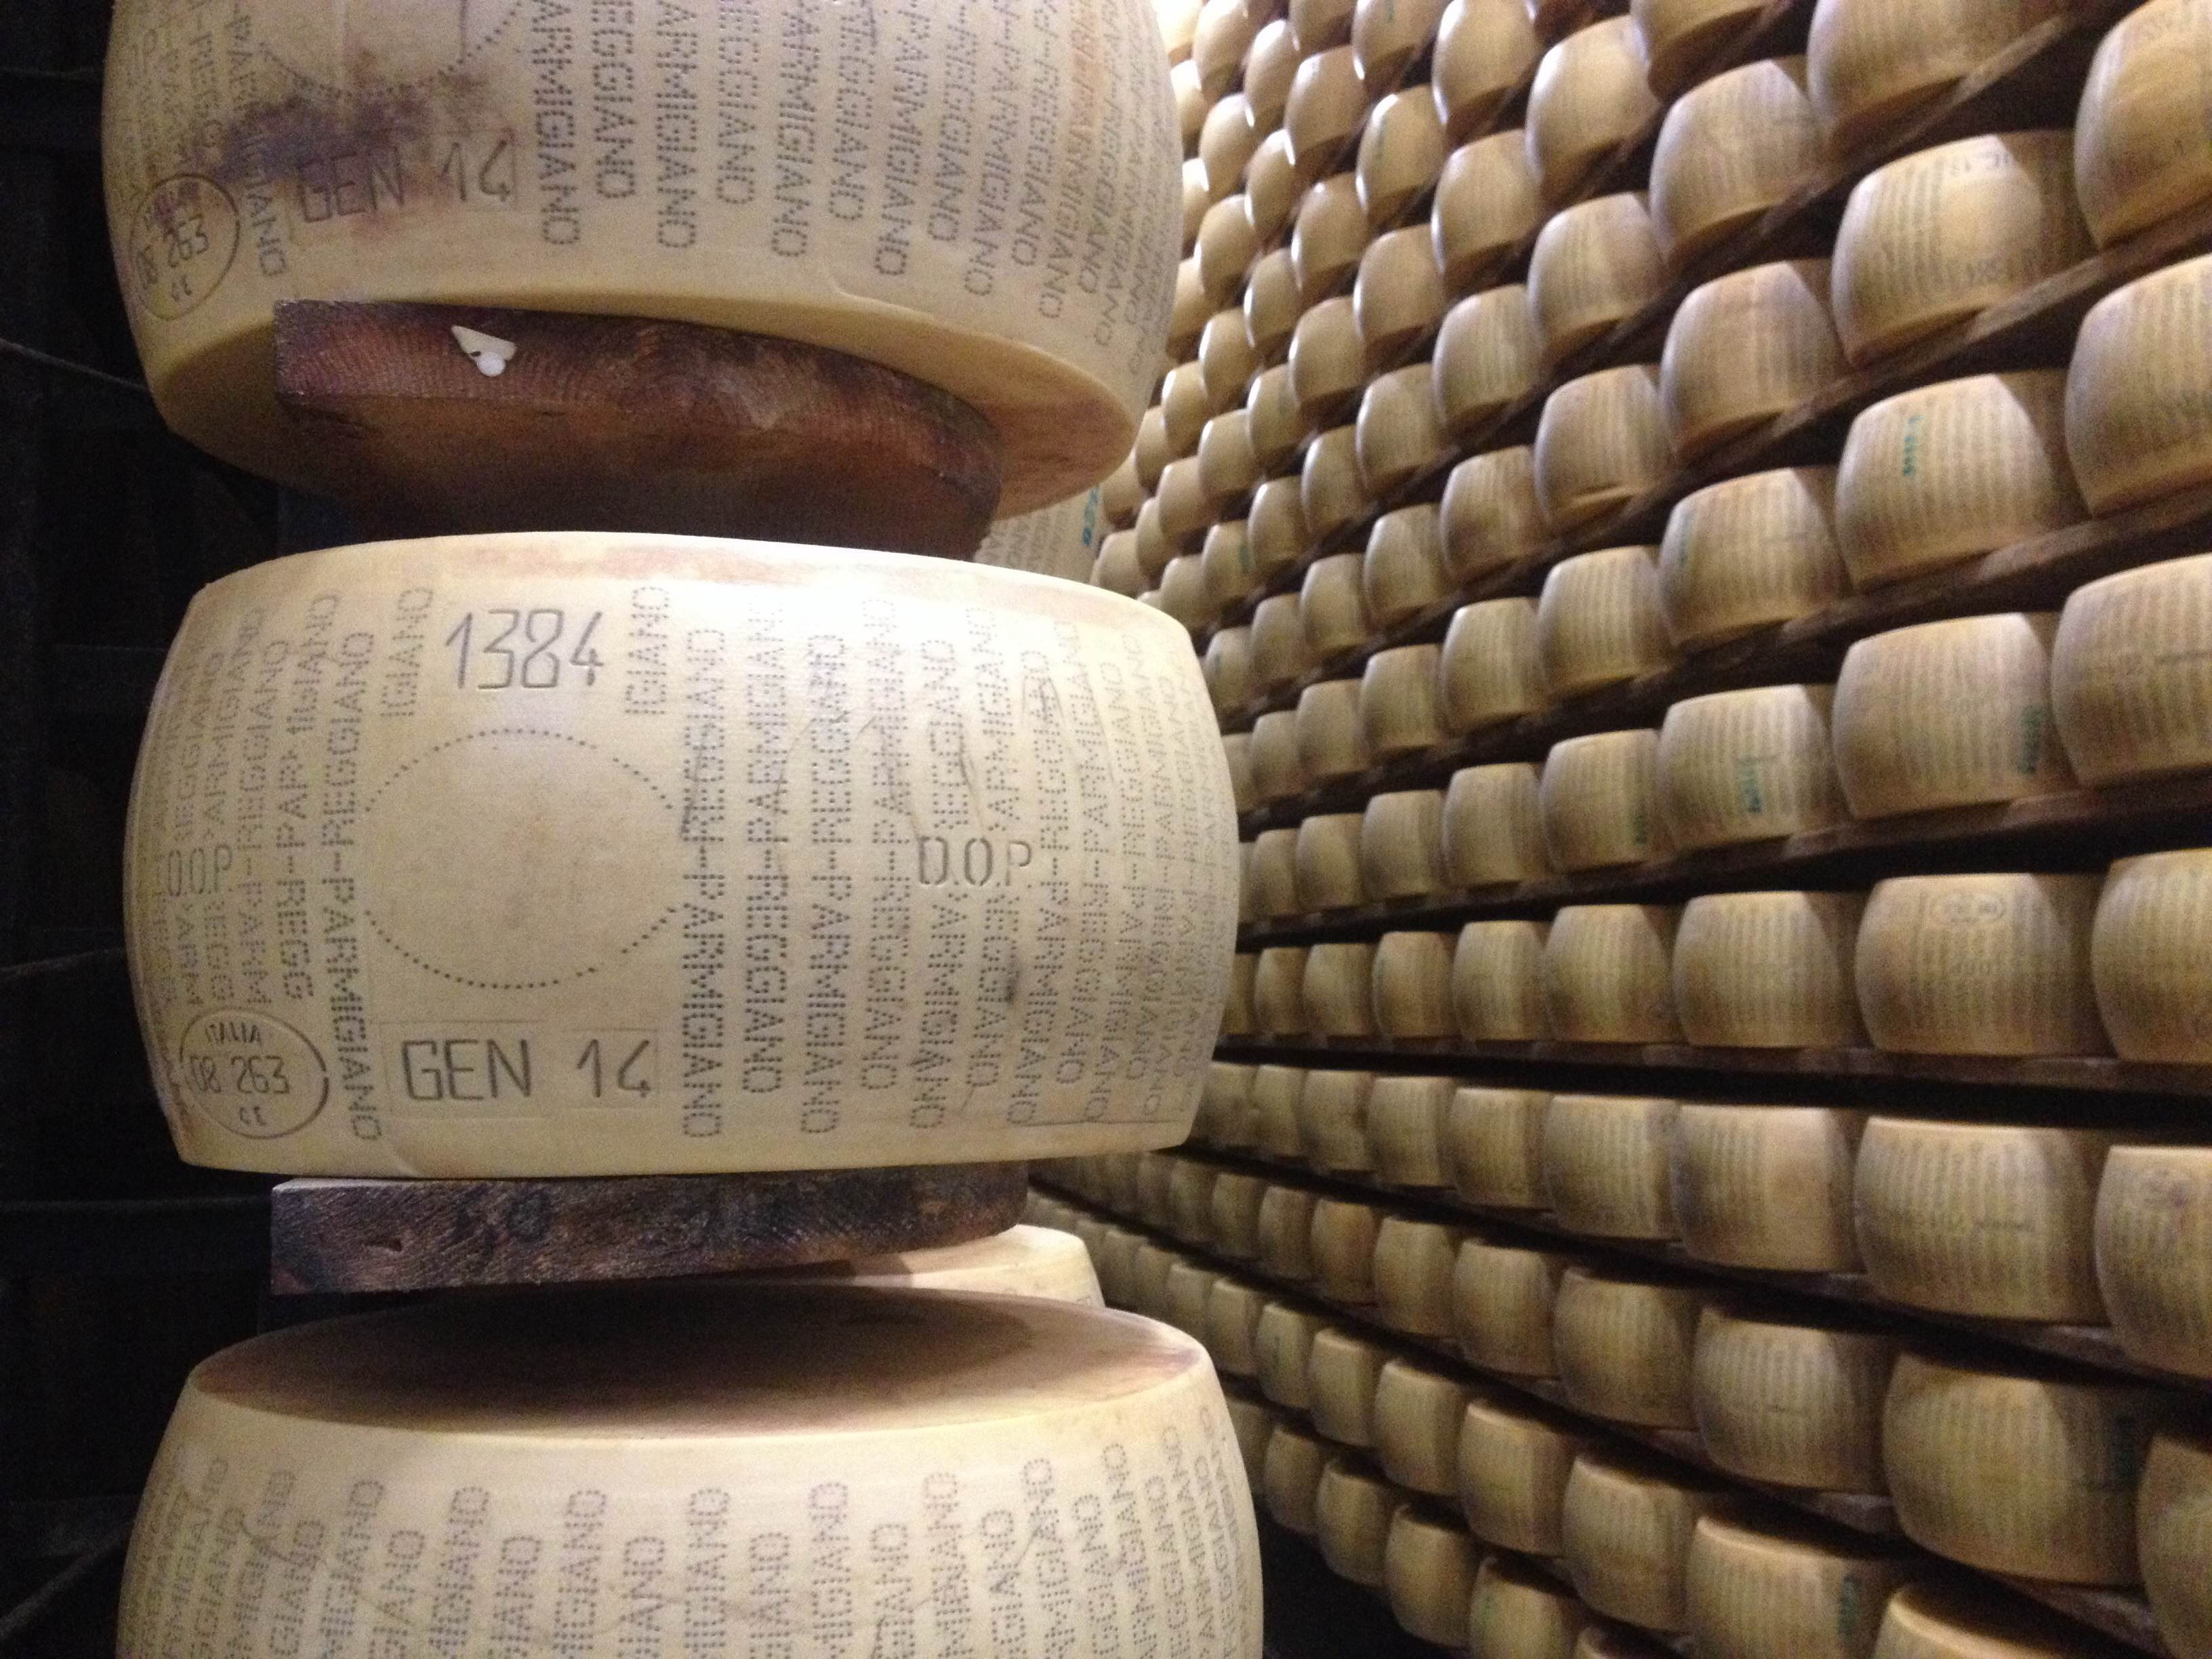 Unapproved_Parmigiano-Reggiano_wheel_on_shelf